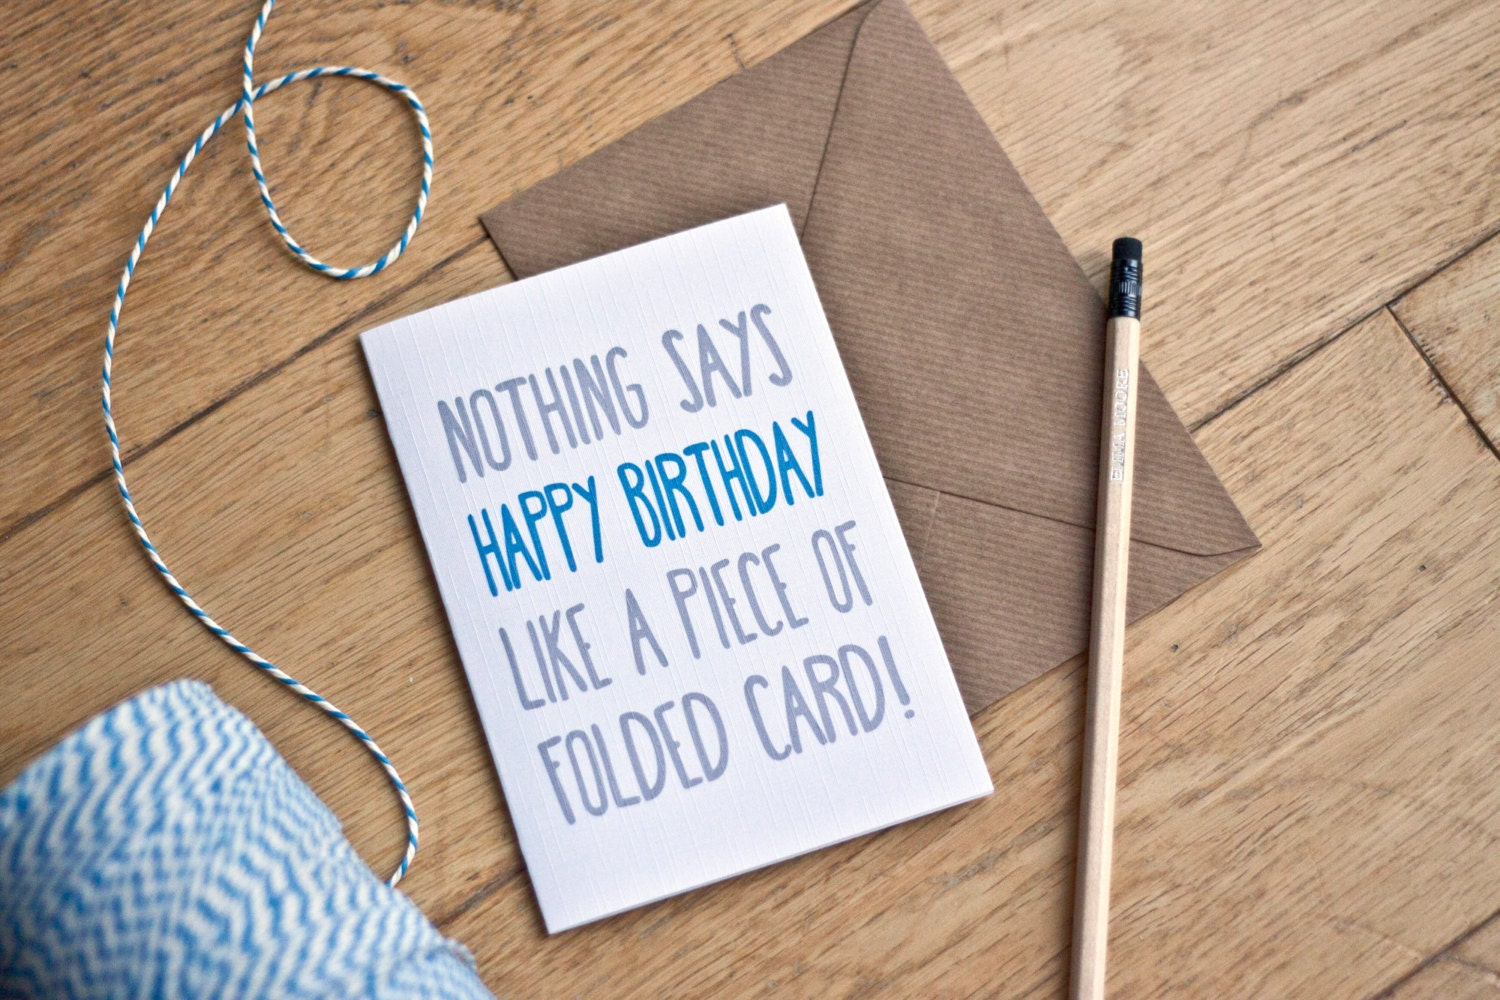 Birthday Cards Wishes For Best Friend ~ Funny birthday card nothing says happy birthday like happy